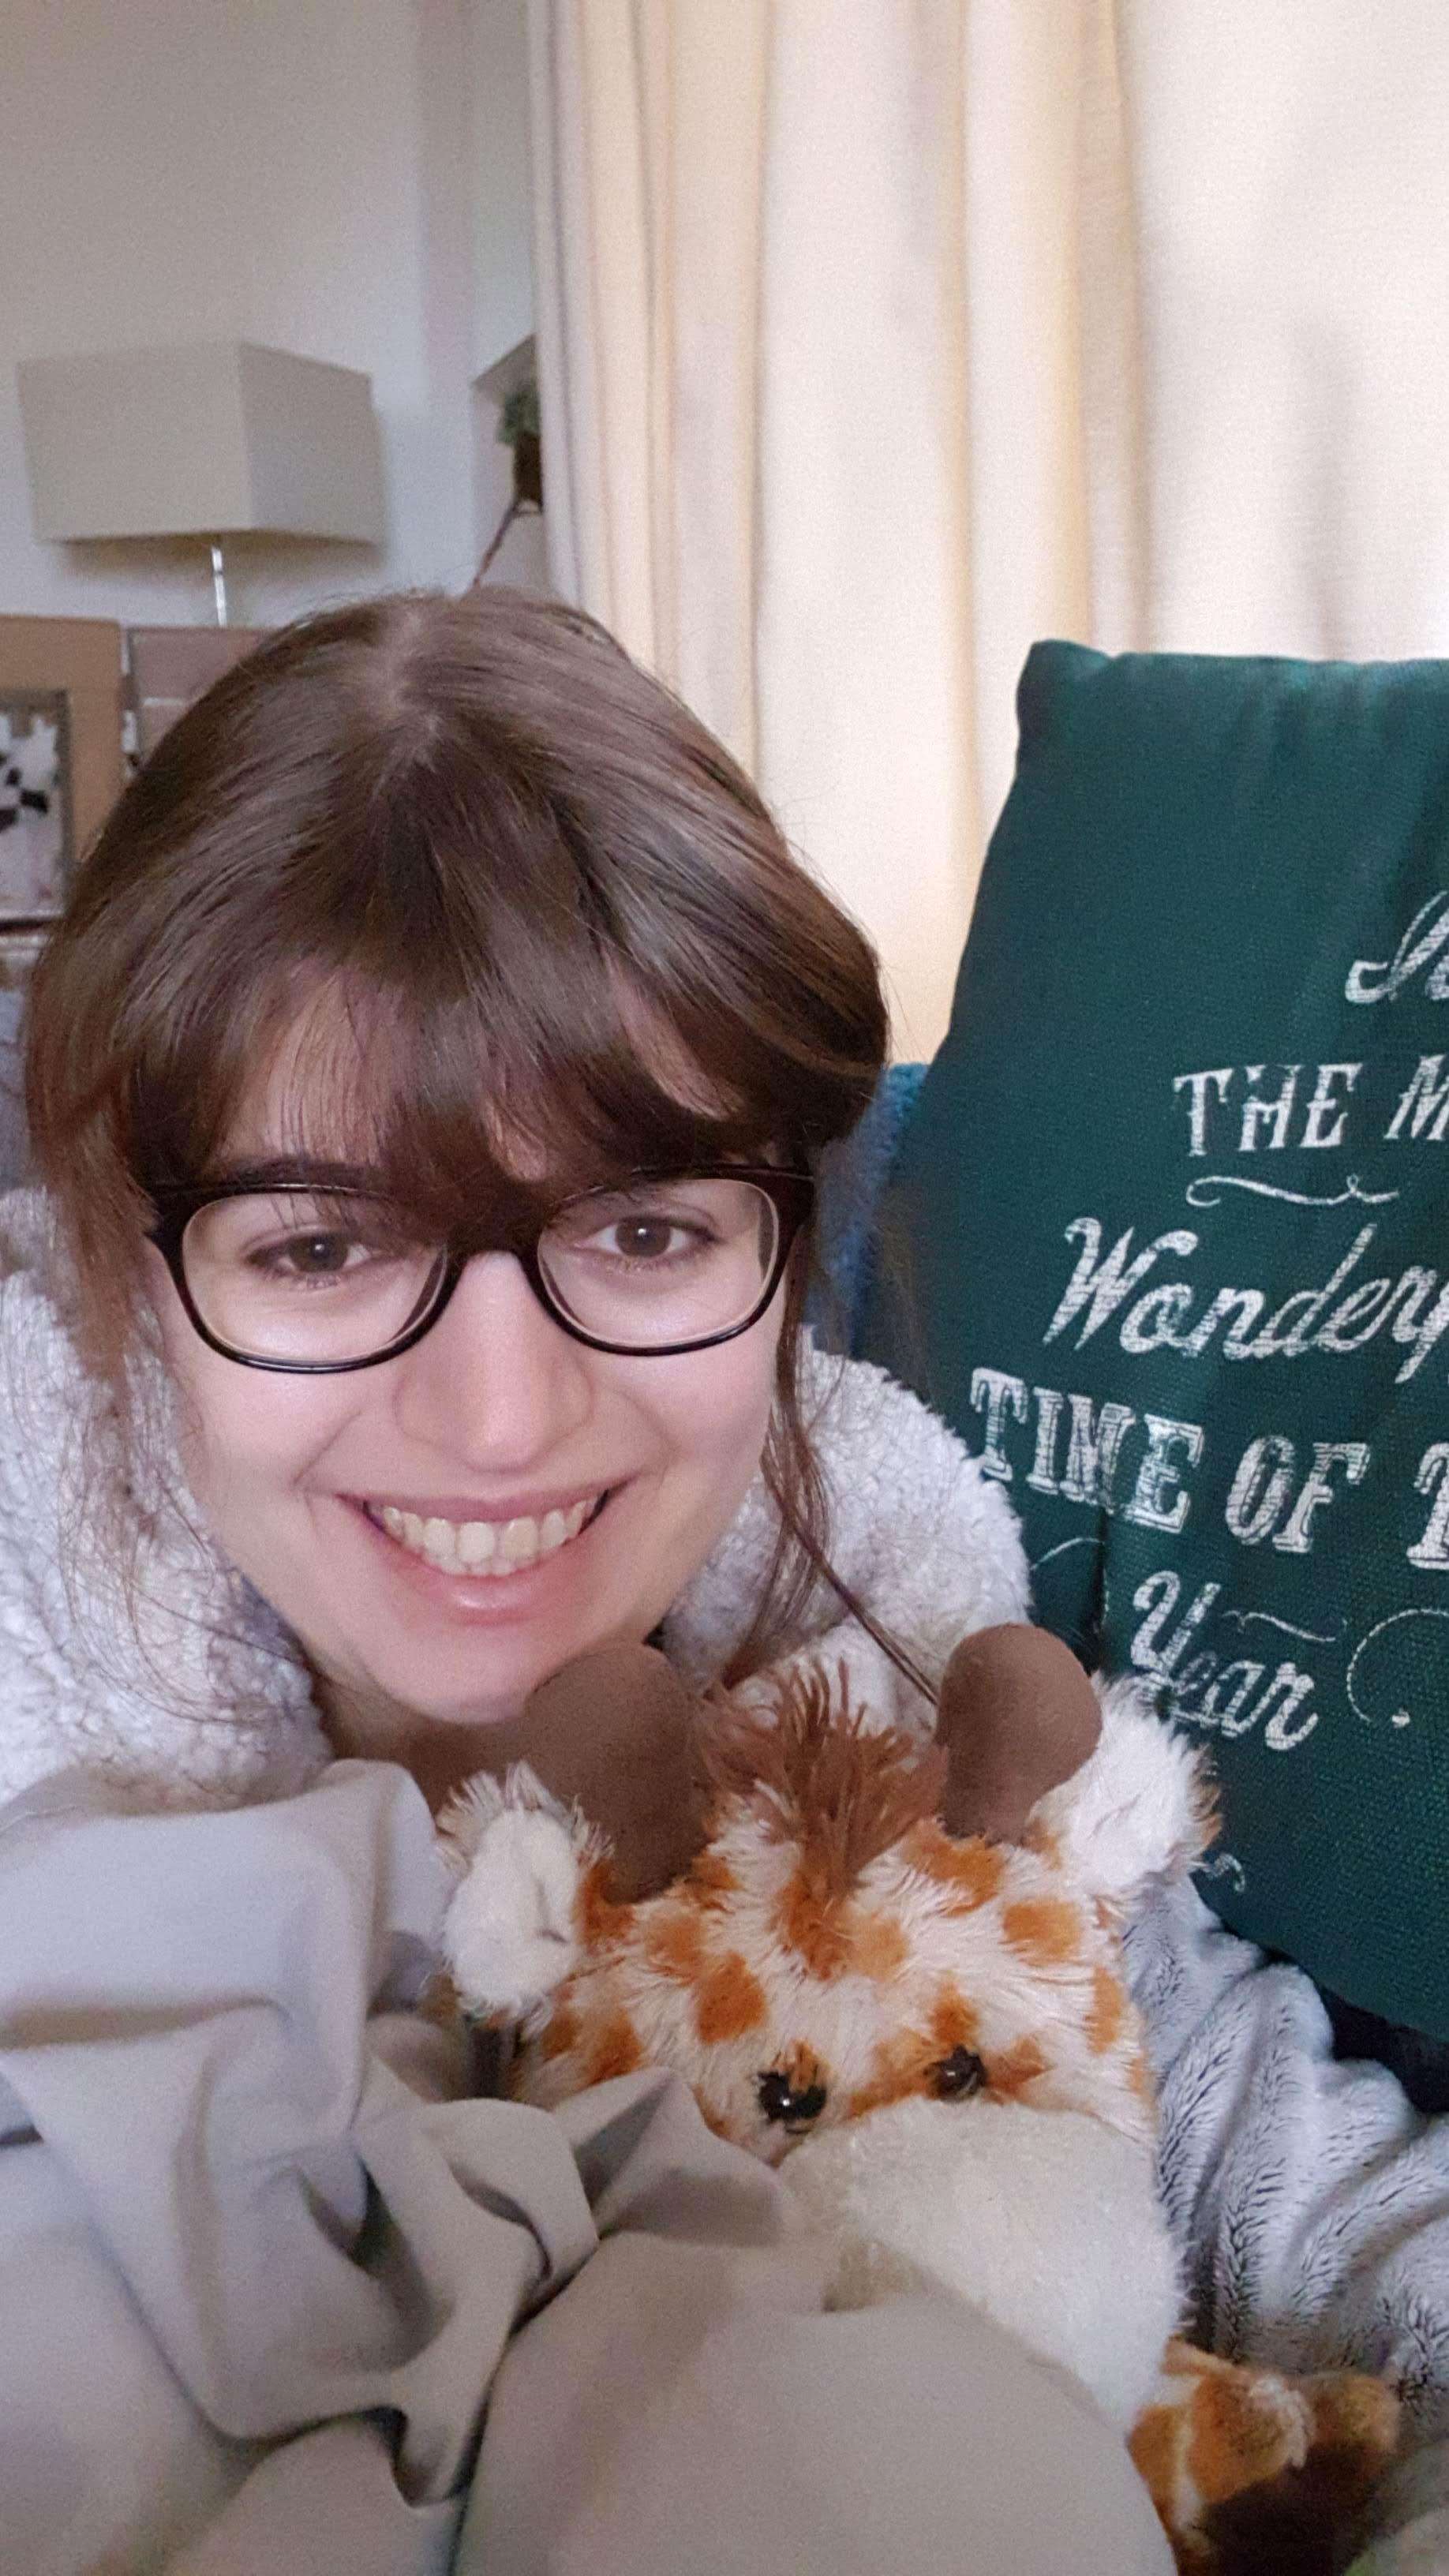 Jenny sitting on the sofa, covered by a big duvet and wearing a cosy dressing gown. There is a Christmas cushion in the background that says 'the most wonderful time of the year' and she's cuddling a giraffe teddy and smiling.